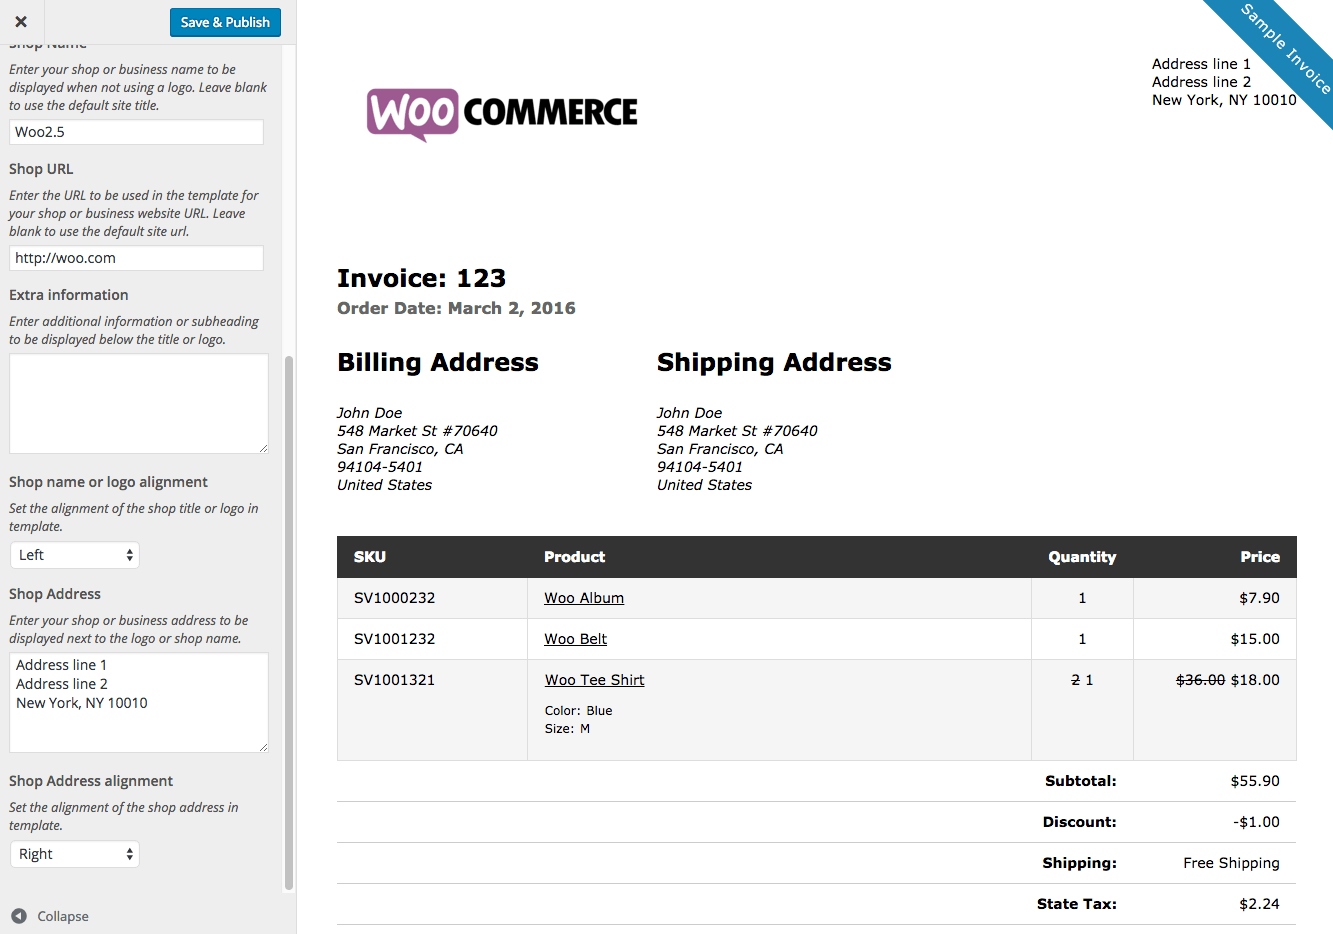 Patriotexpressus  Unusual Woocommerce Print Invoices Amp Packing Lists  Woocommerce Docs With Lovable Woocommerce Print Invoices  Packing Lists Customizer With Archaic Toyota Prius Invoice Price Also Invoice Template Consulting In Addition Free Online Invoices Printable And Invoice Template Download Free As Well As How To Make An Invoice In Google Docs Additionally Quickbooks Invoice Forms From Docswoocommercecom With Patriotexpressus  Lovable Woocommerce Print Invoices Amp Packing Lists  Woocommerce Docs With Archaic Woocommerce Print Invoices  Packing Lists Customizer And Unusual Toyota Prius Invoice Price Also Invoice Template Consulting In Addition Free Online Invoices Printable From Docswoocommercecom